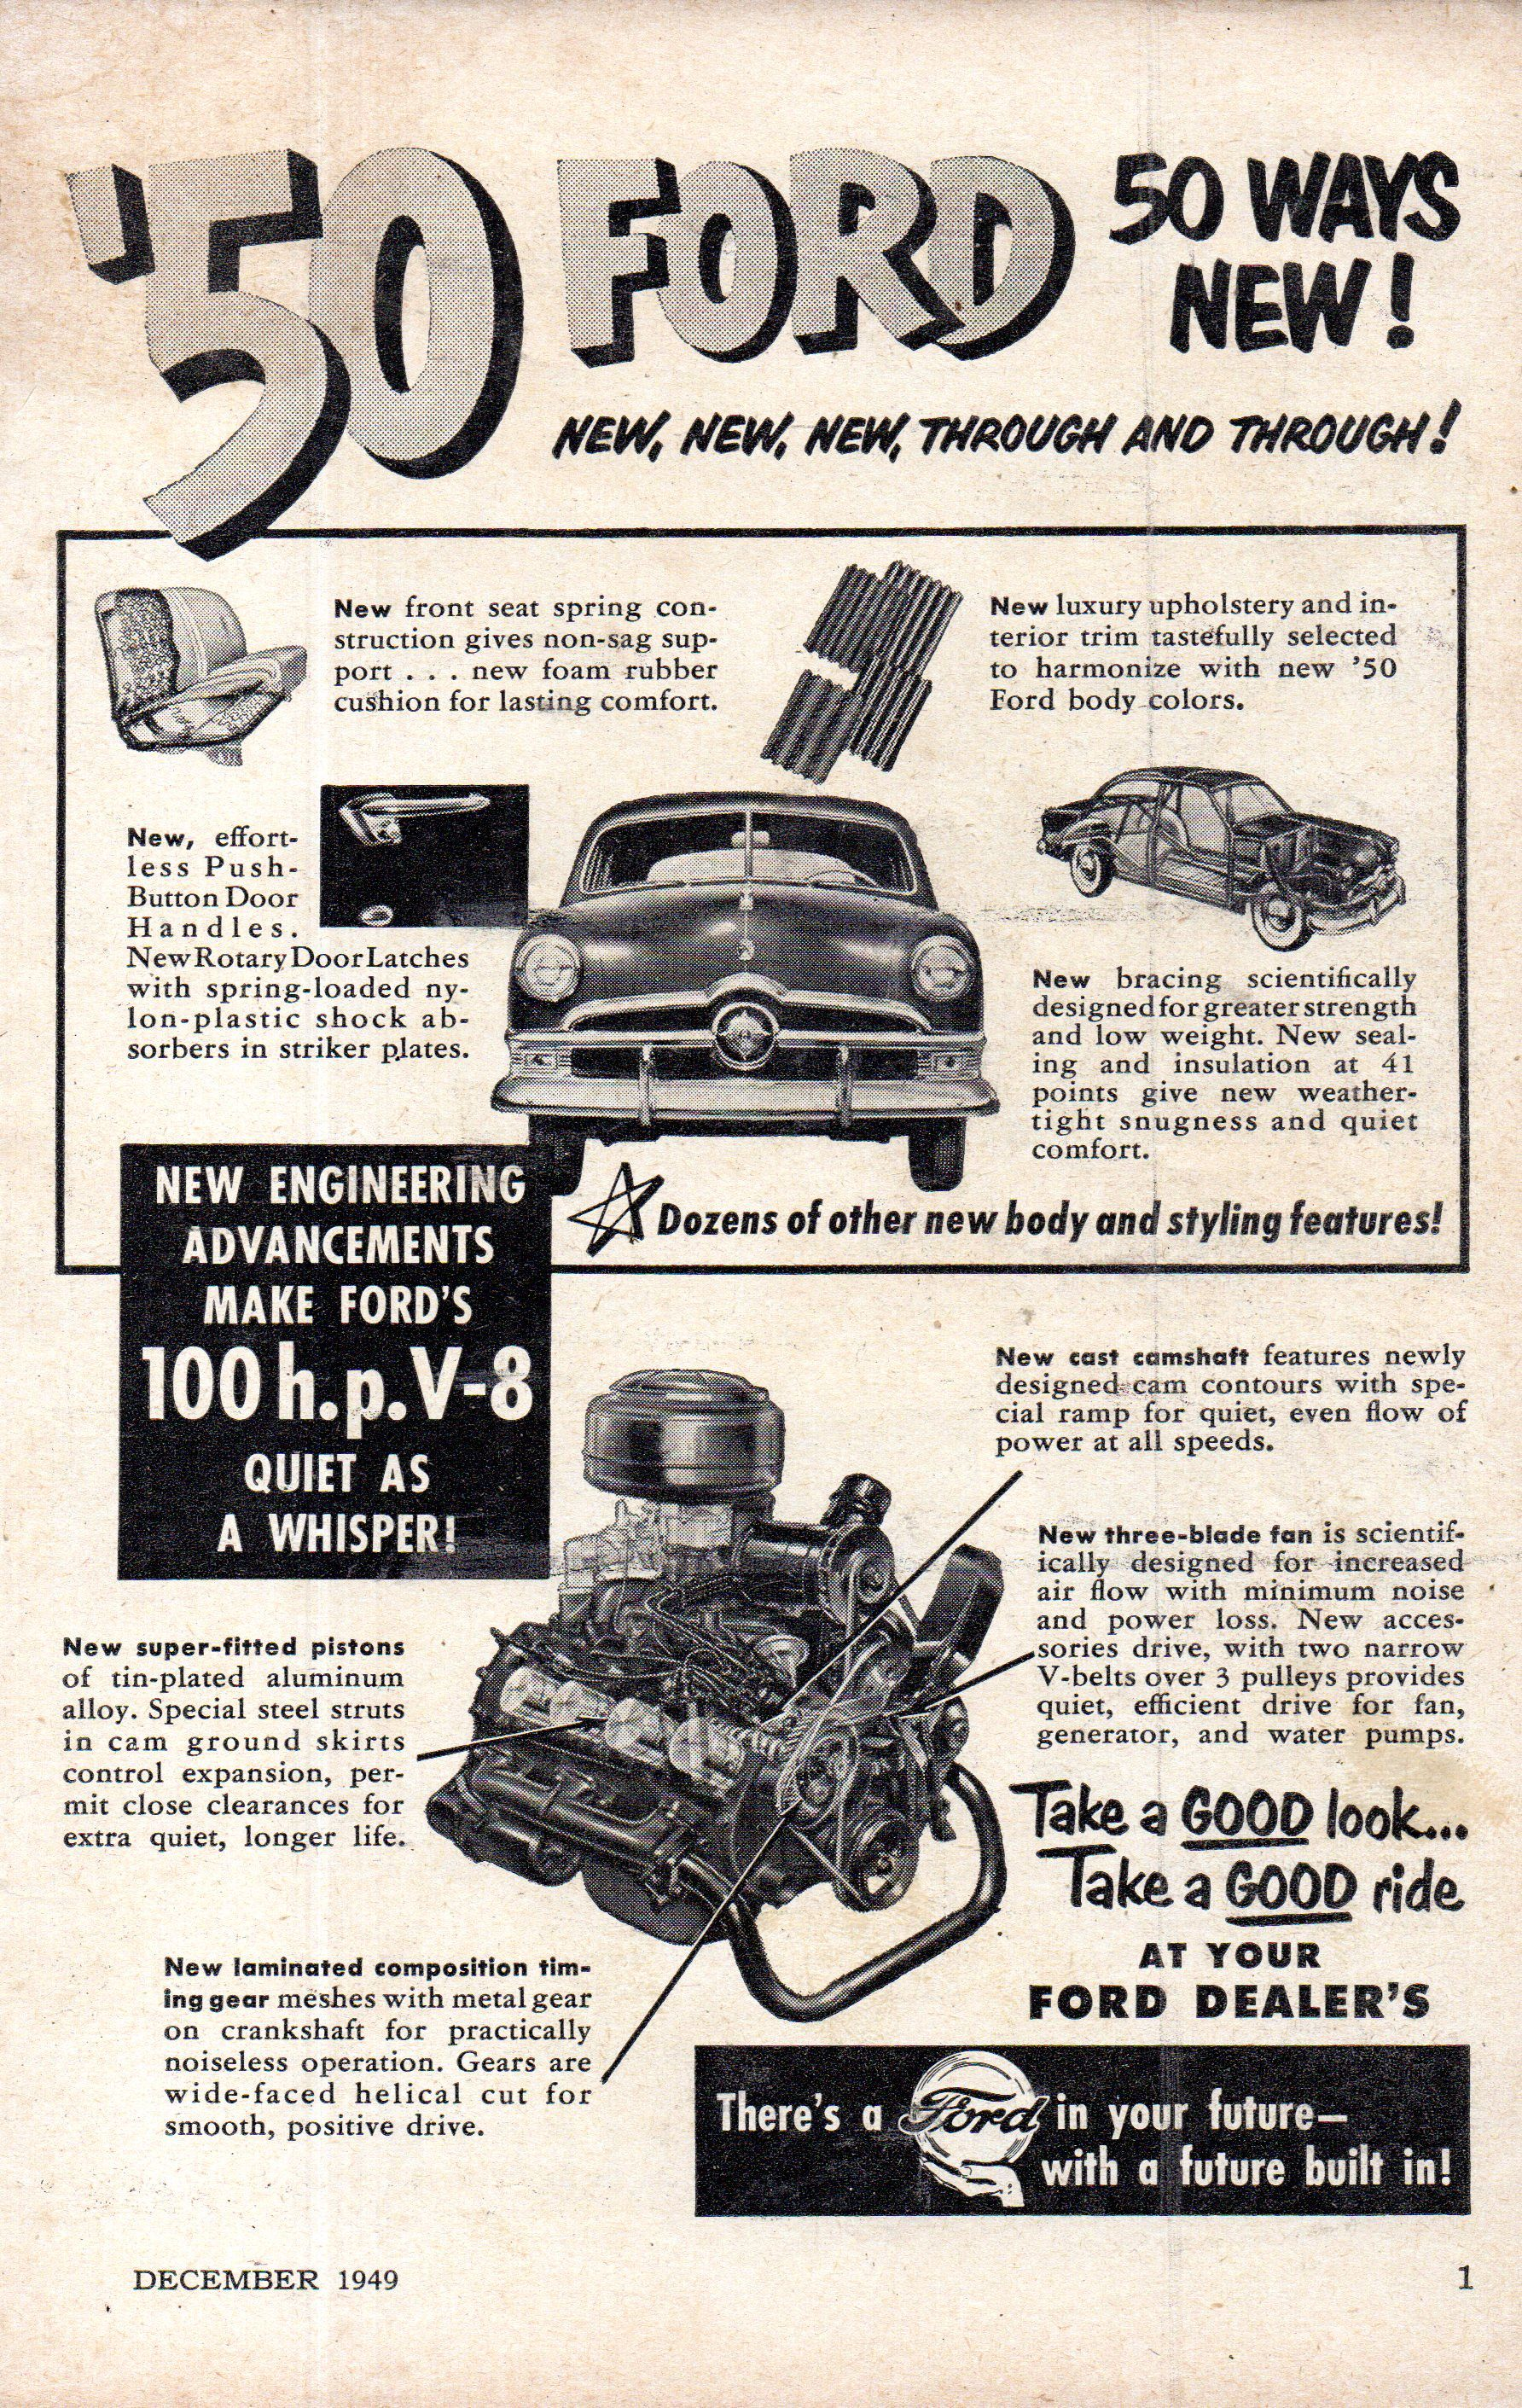 1950 Ford Single Spinner Usa Original Magazine Advertisement In 2020 Ford Ford News Advertising